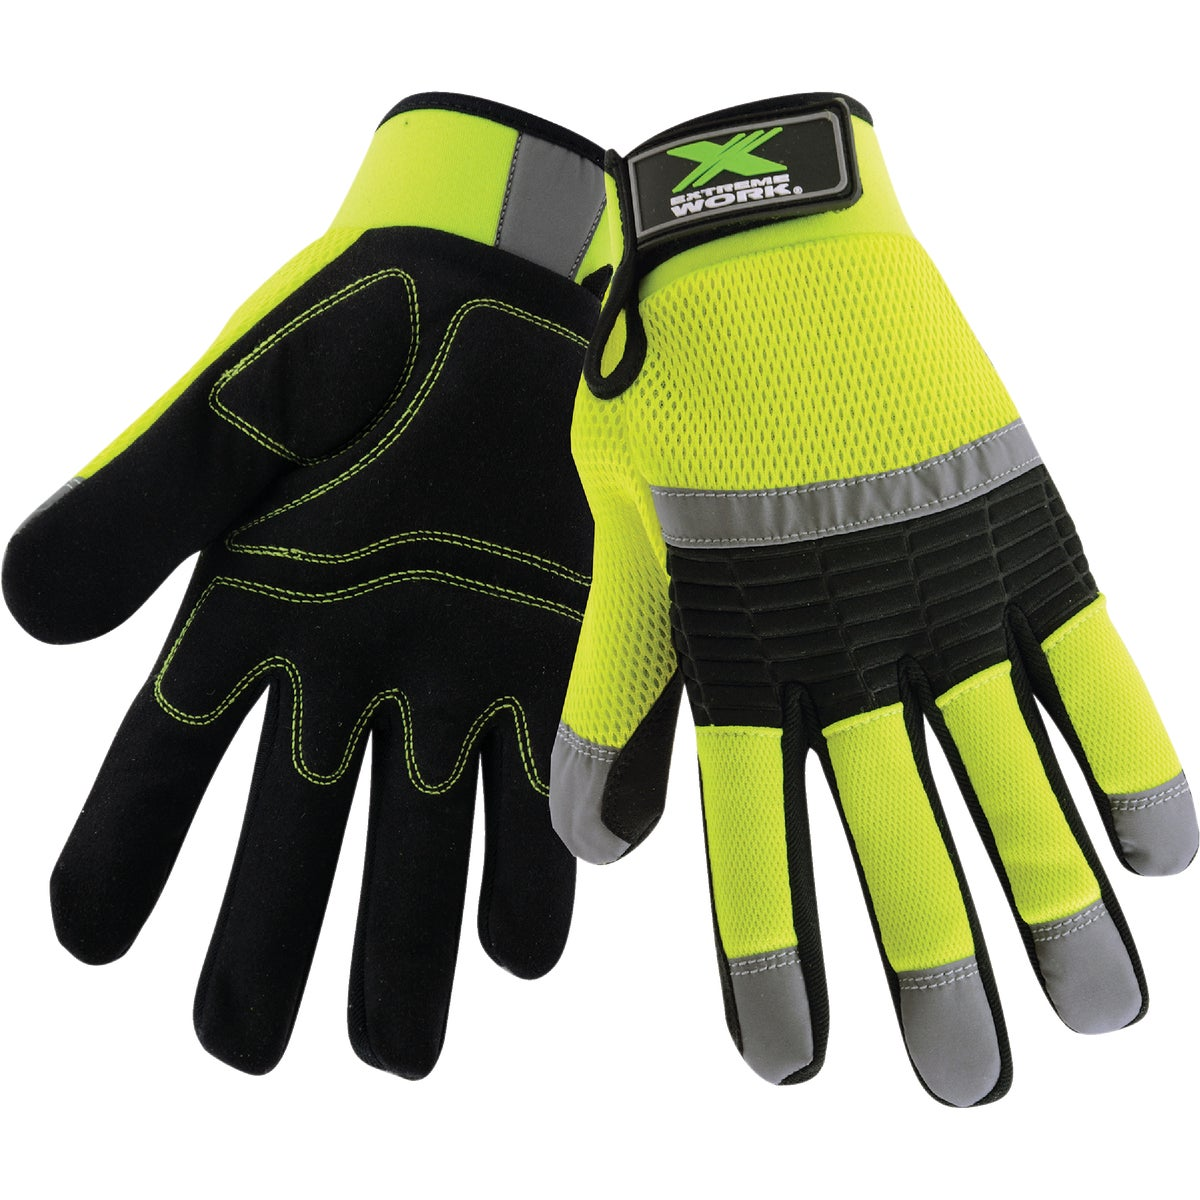 MED HIVISIBILITY GLOVE